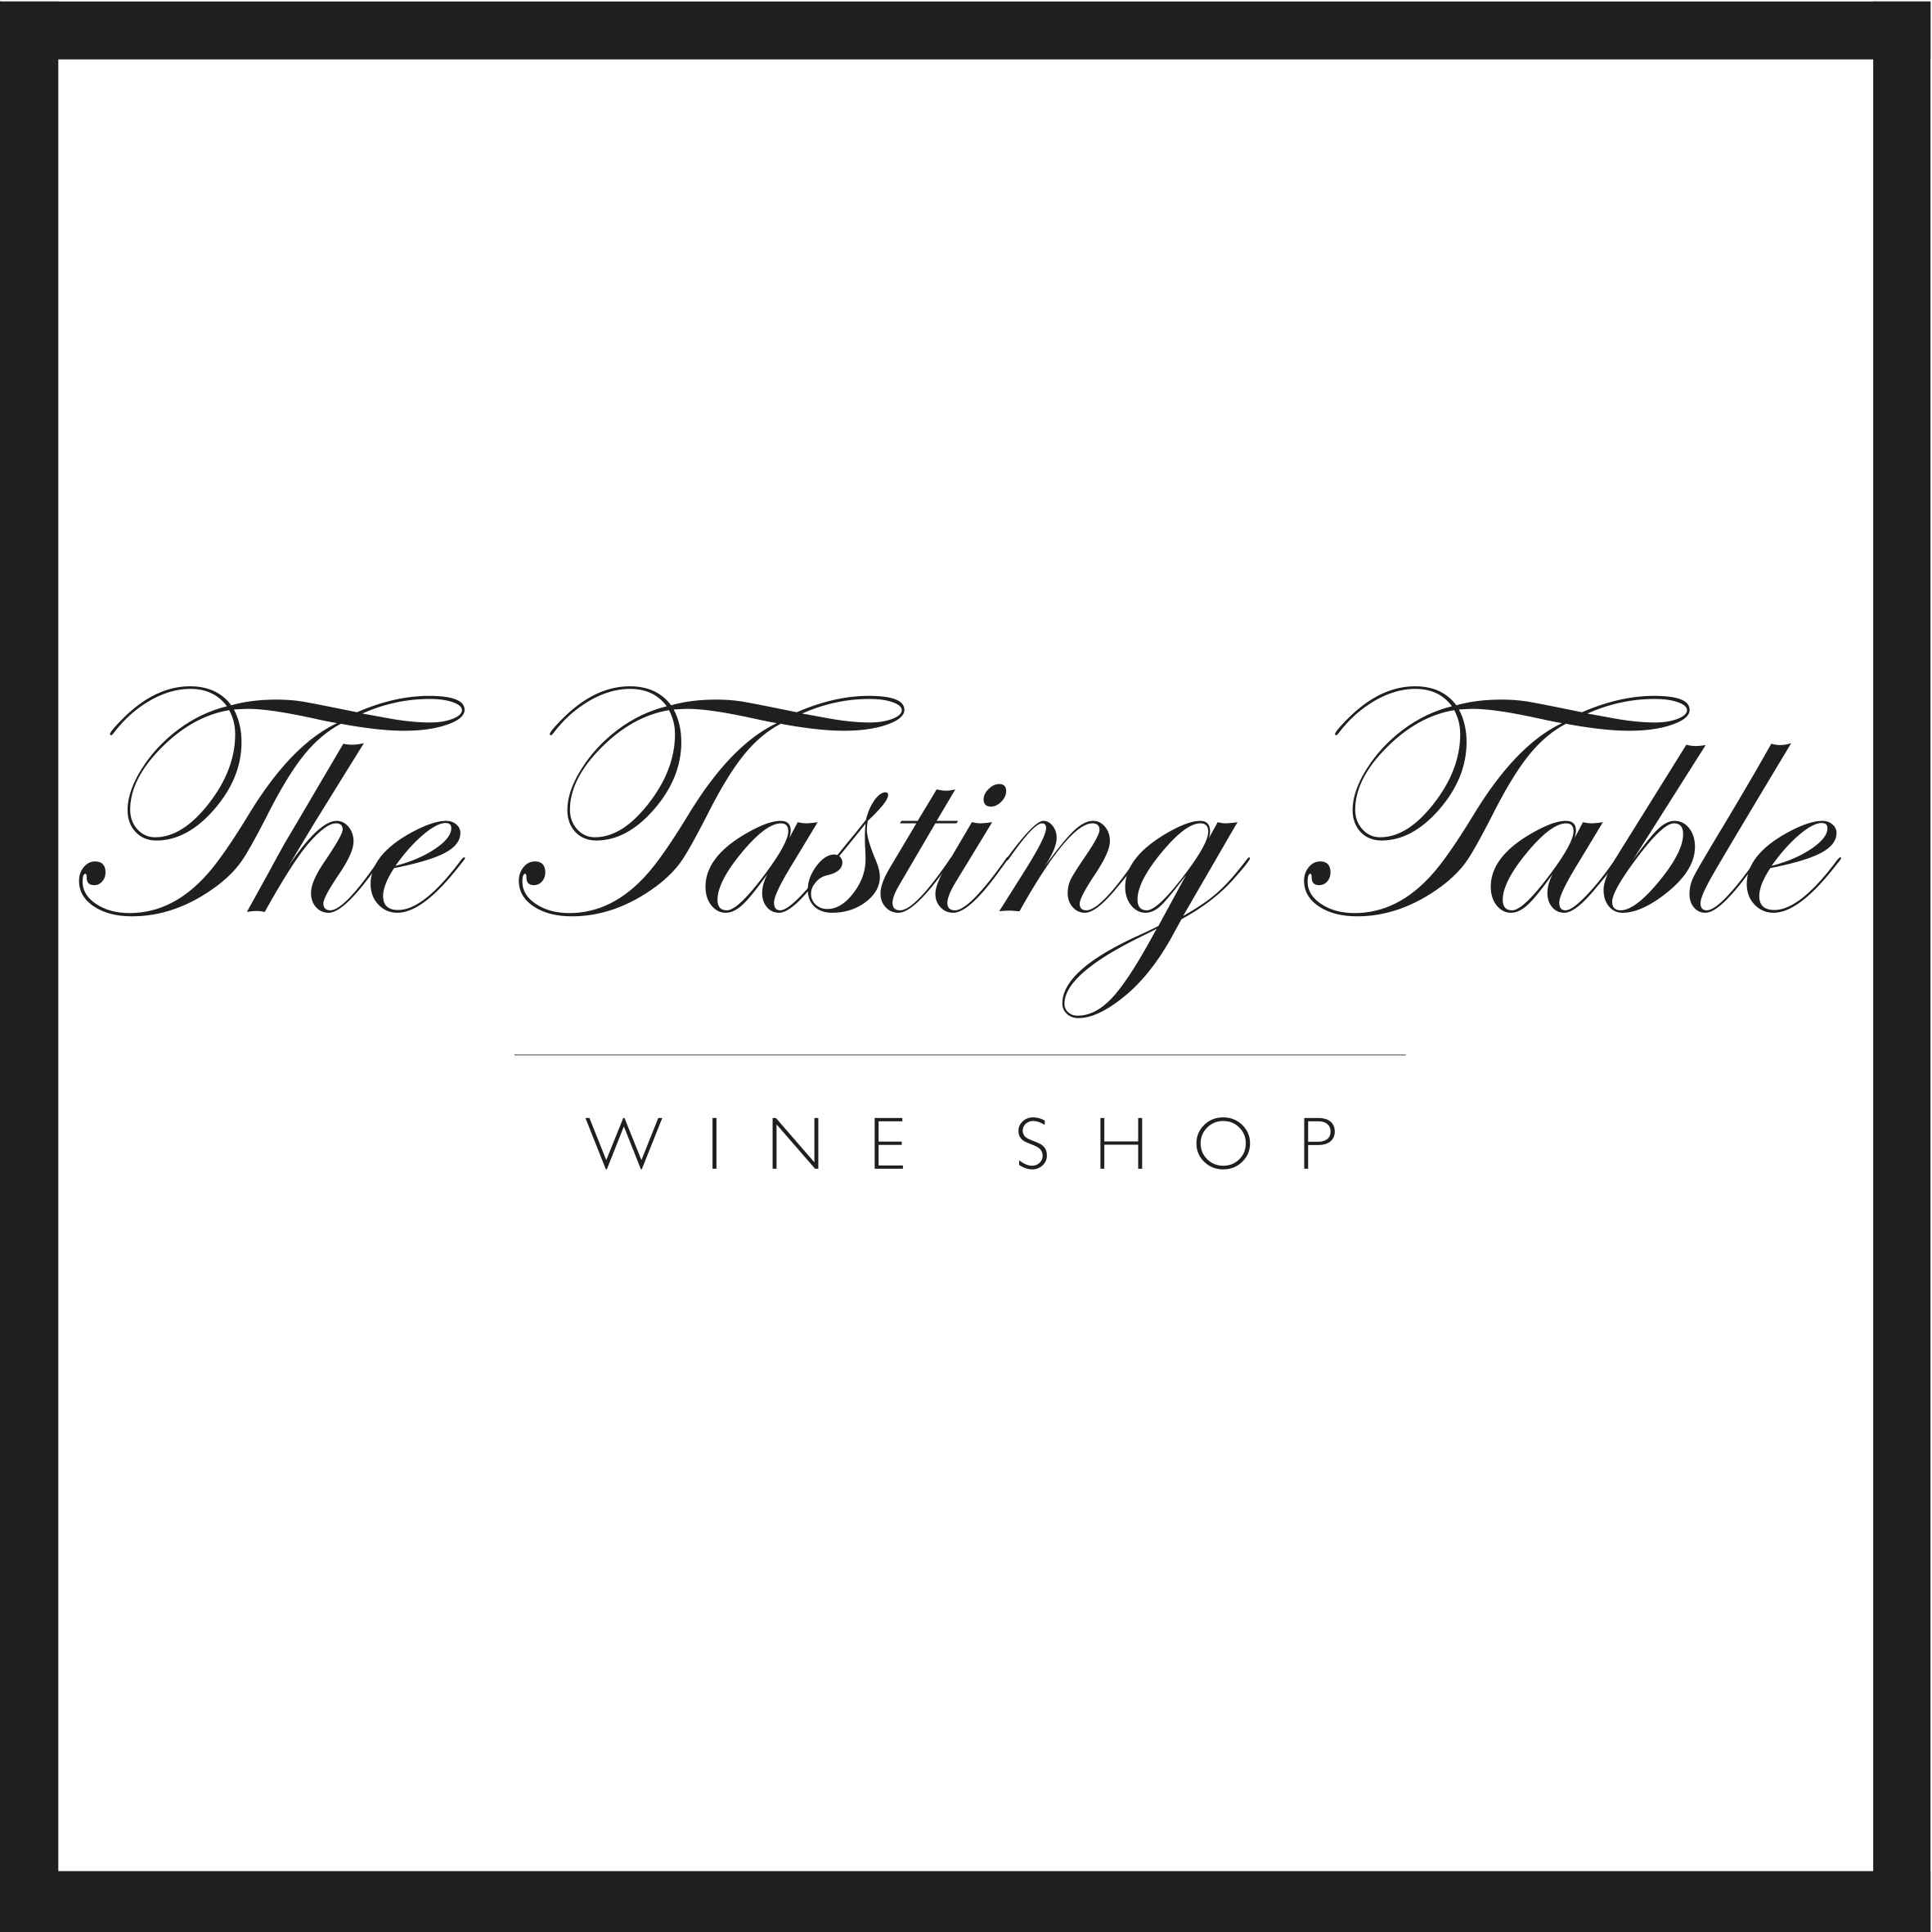 The Tasting Table Wine Shop